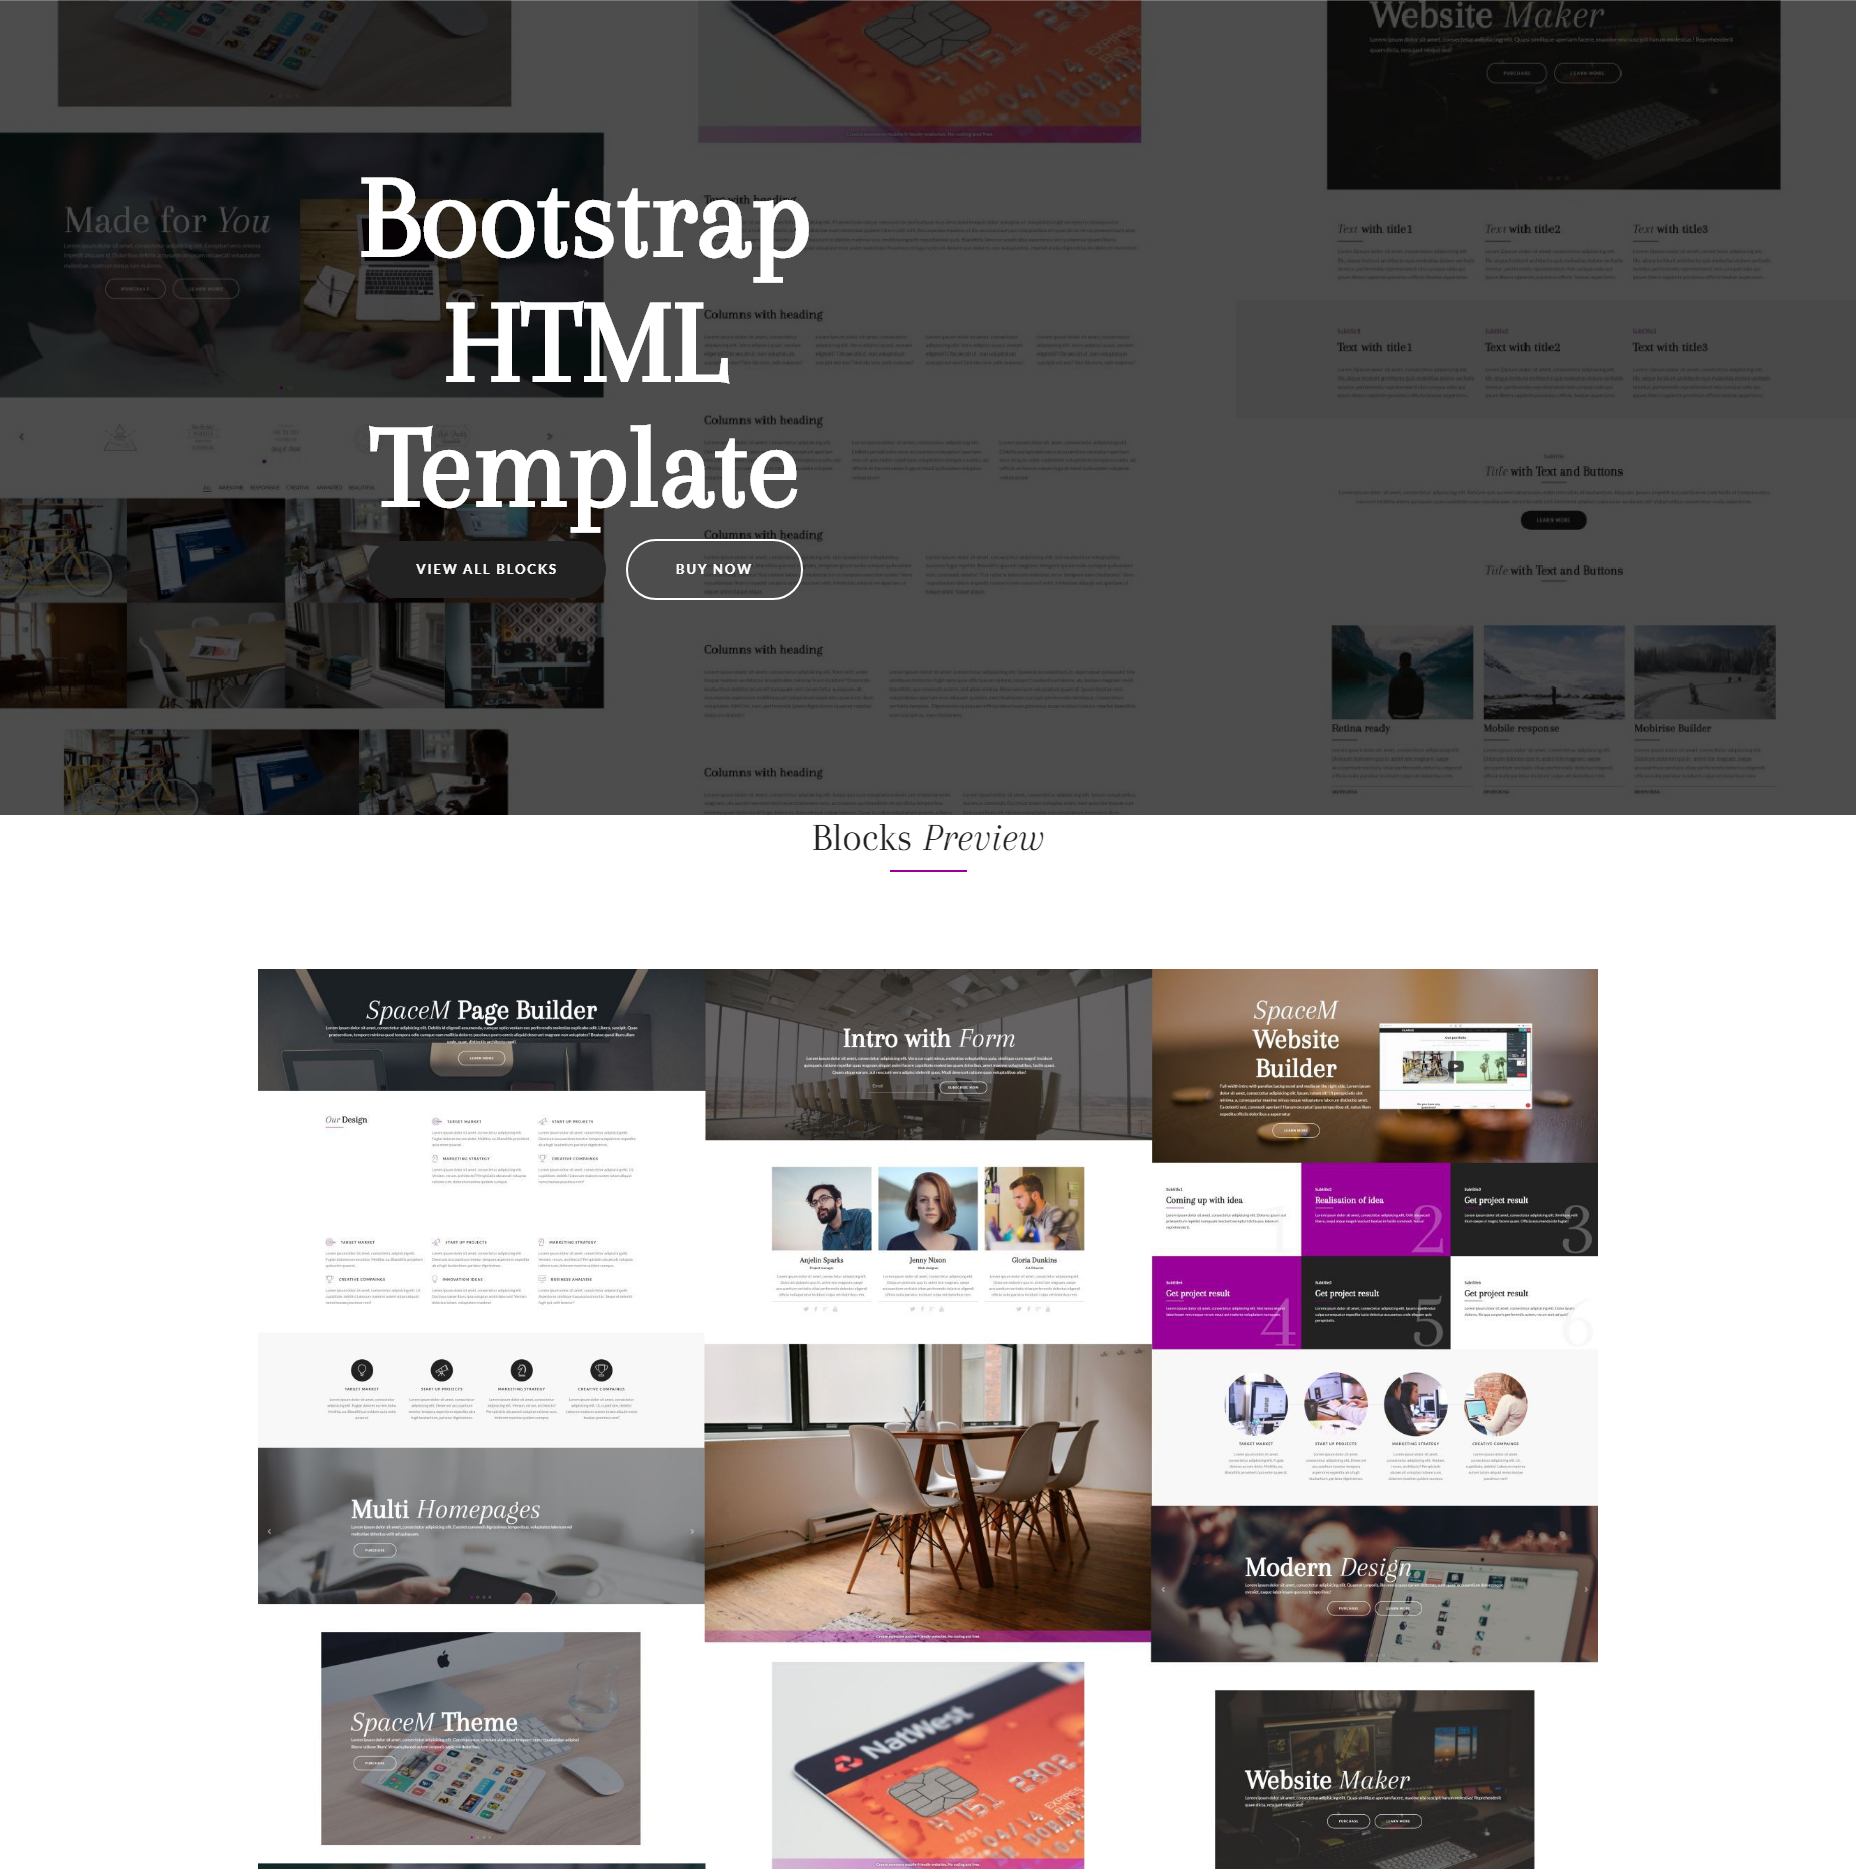 SpaceM HTML Bootstrap Template